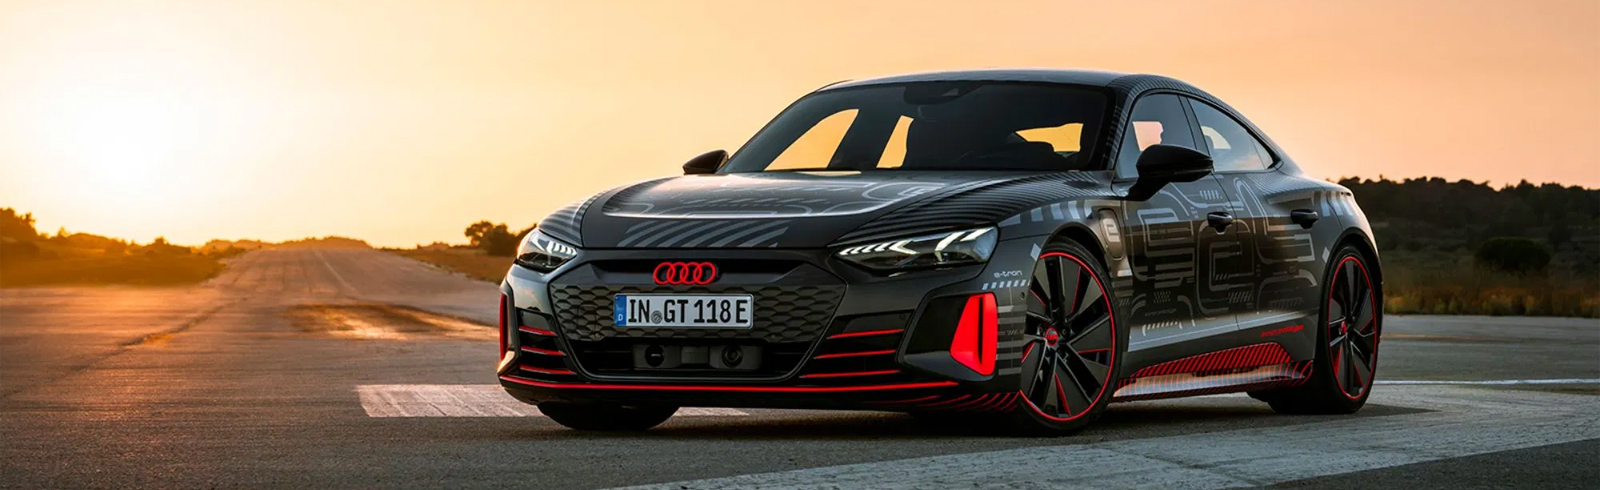 Audi increases its electromobility budget up to 2025